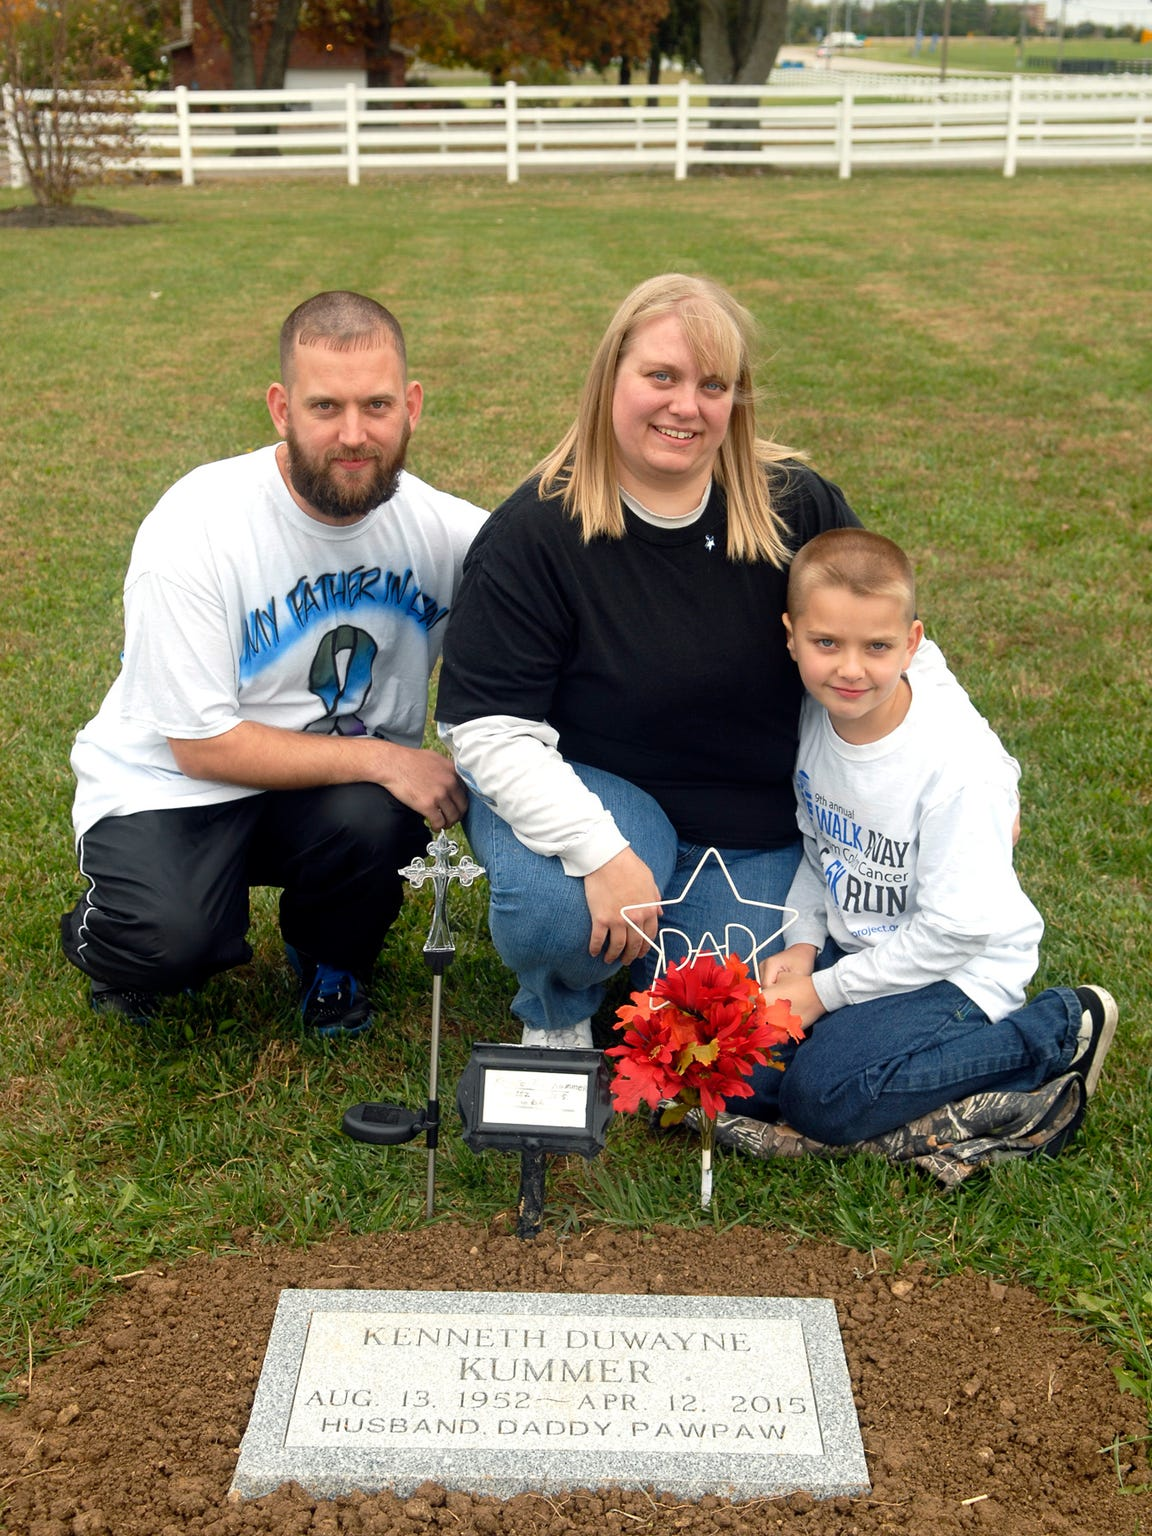 Allen and Shannon McCowan and their son, AJ, 9, pose for a portrait in front of Shannon's father's grave at Crosswater Gardens. Her father, Kenneth Kummer, died in April after an 18-month battle with colon cancer. October 31, 2015